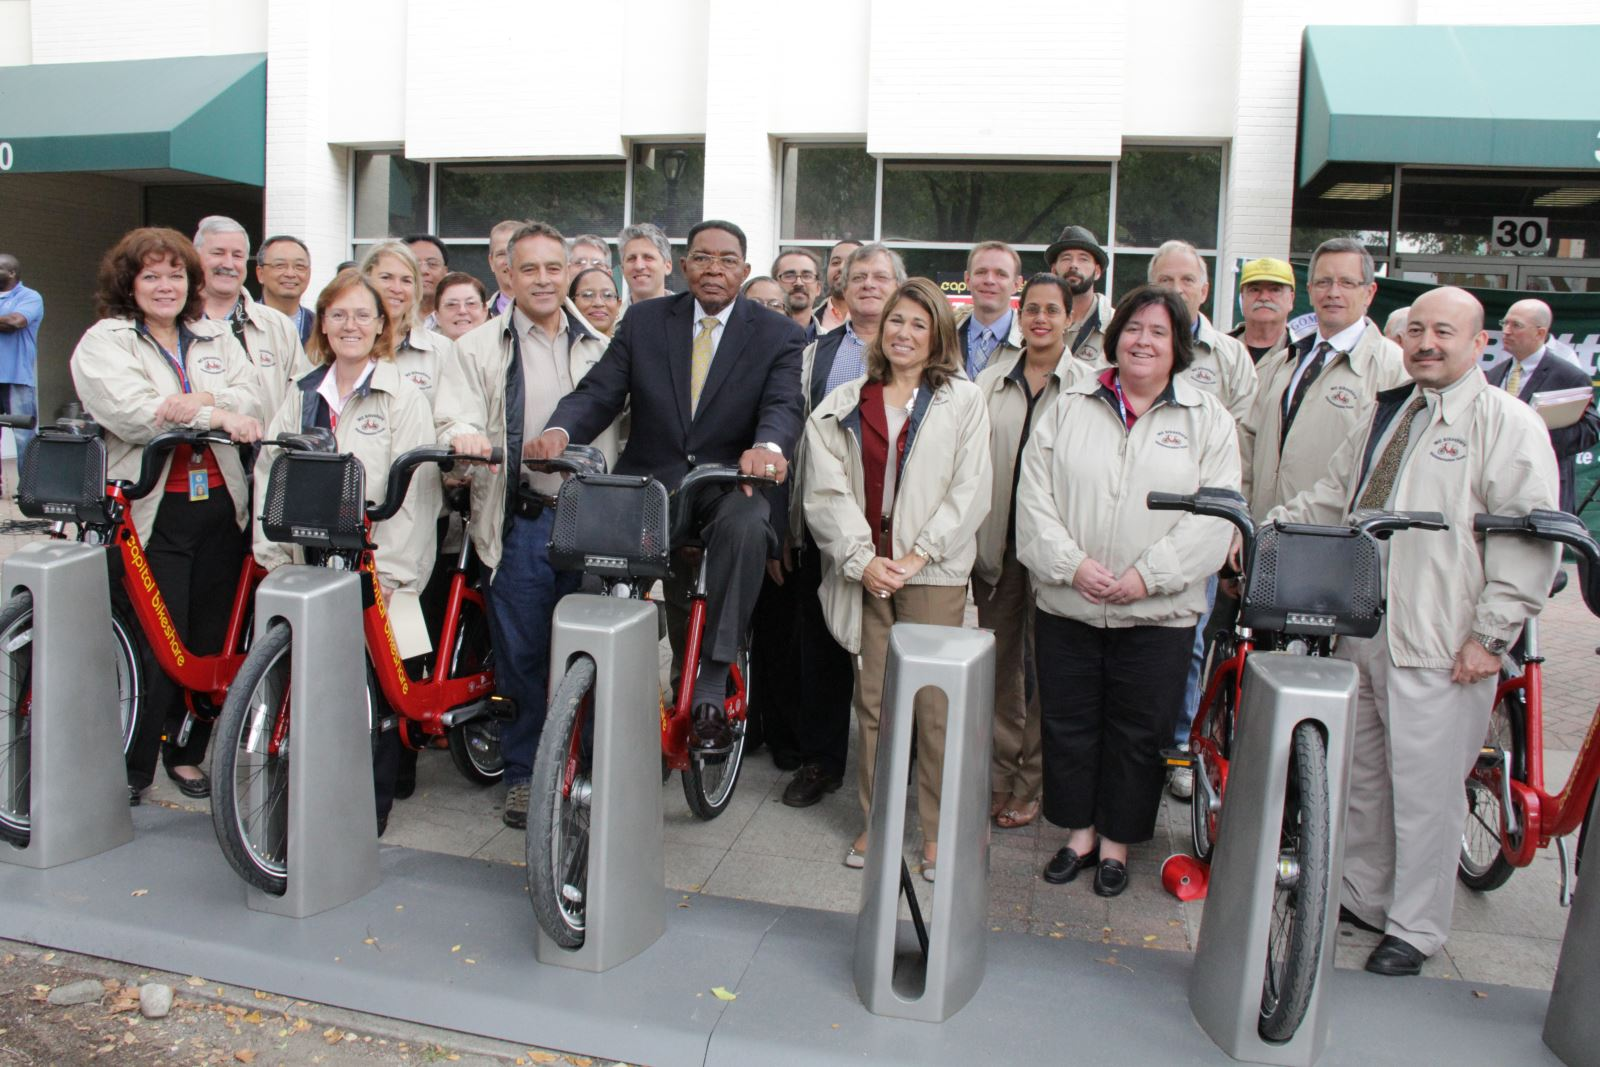 Bikeshare is open in Montgomery County!